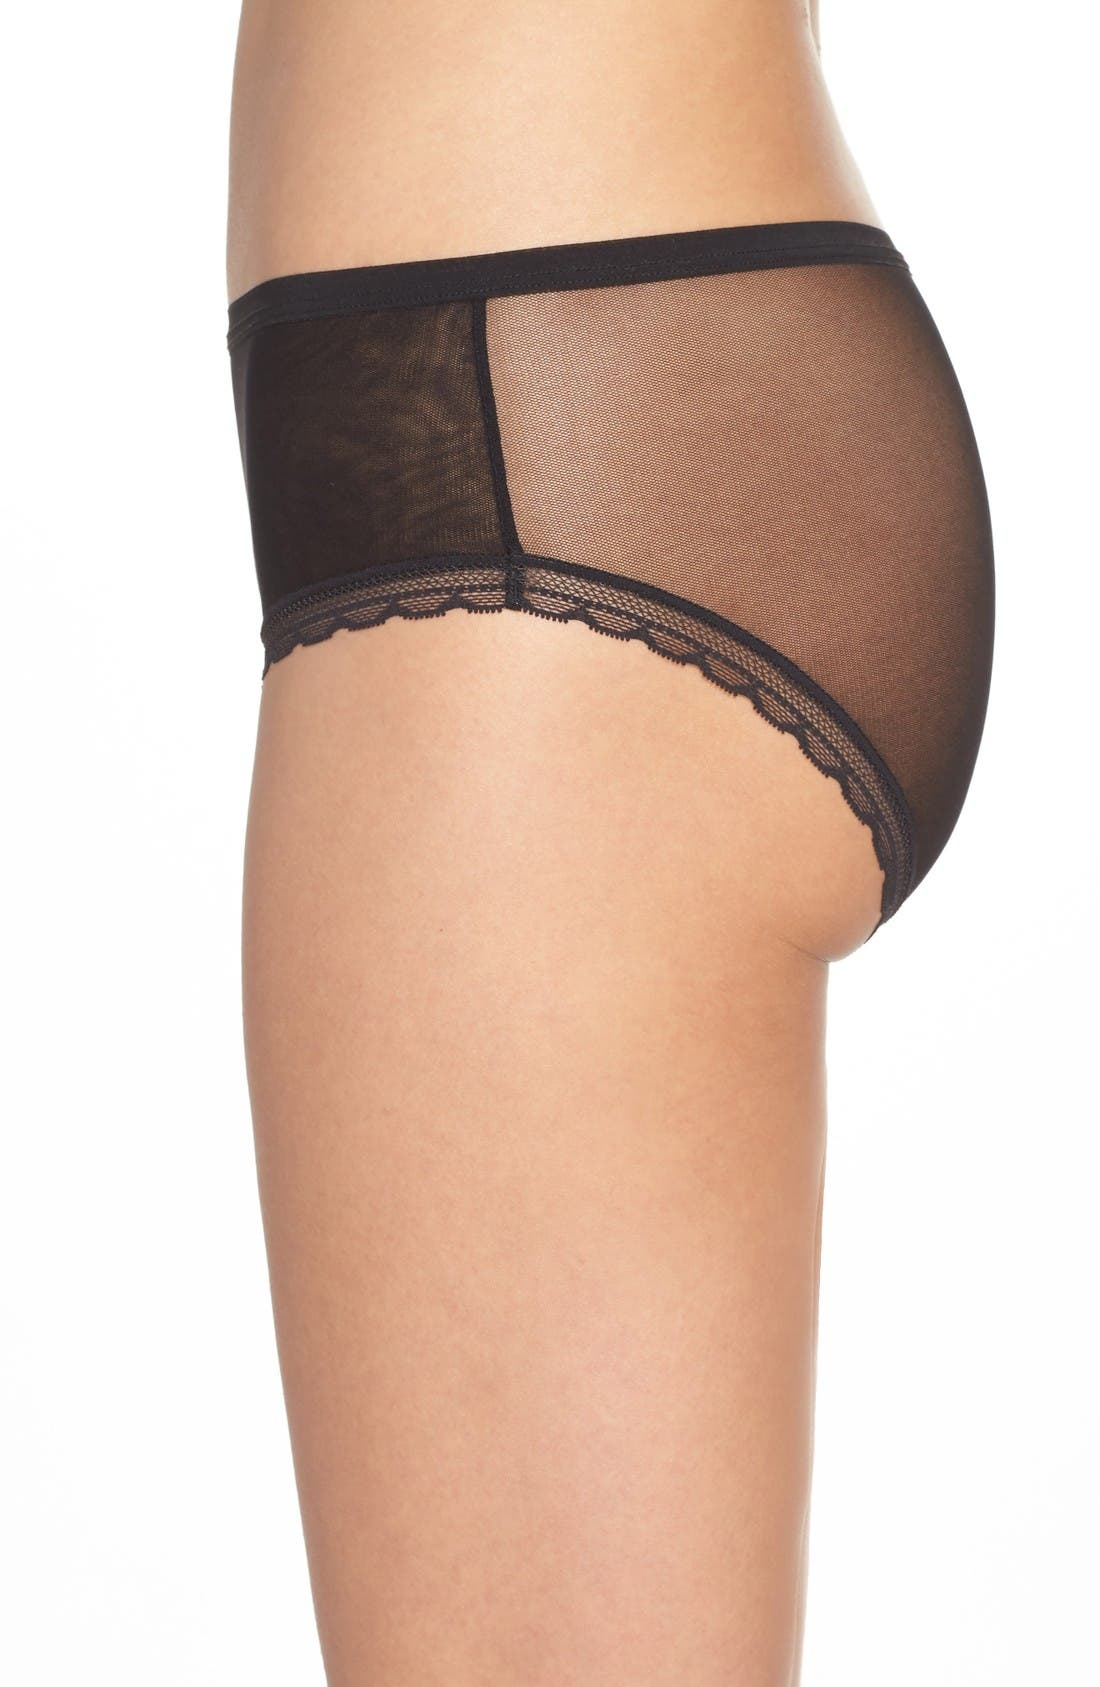 Alternate Image 3  - On Gossamer Modern Mesh Panties (3 for $45)